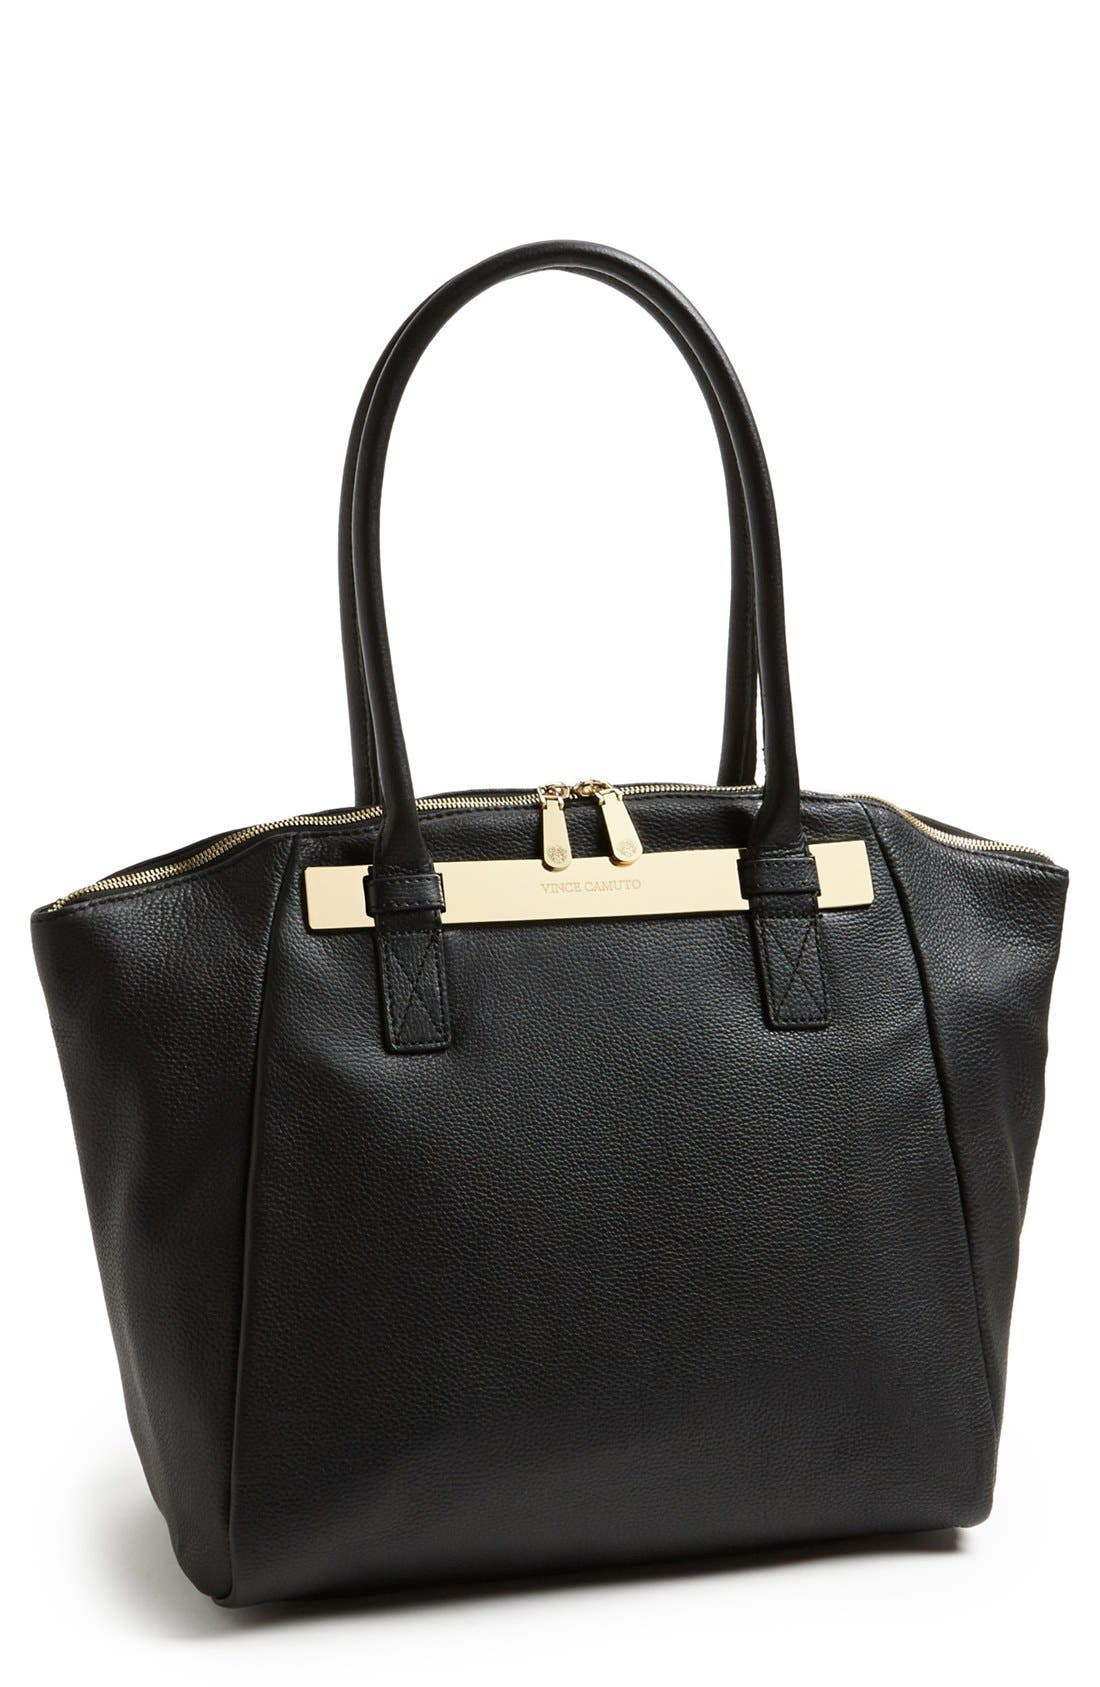 Alternate Image 1 Selected - Vince Camuto 'Jace' Leather Tote